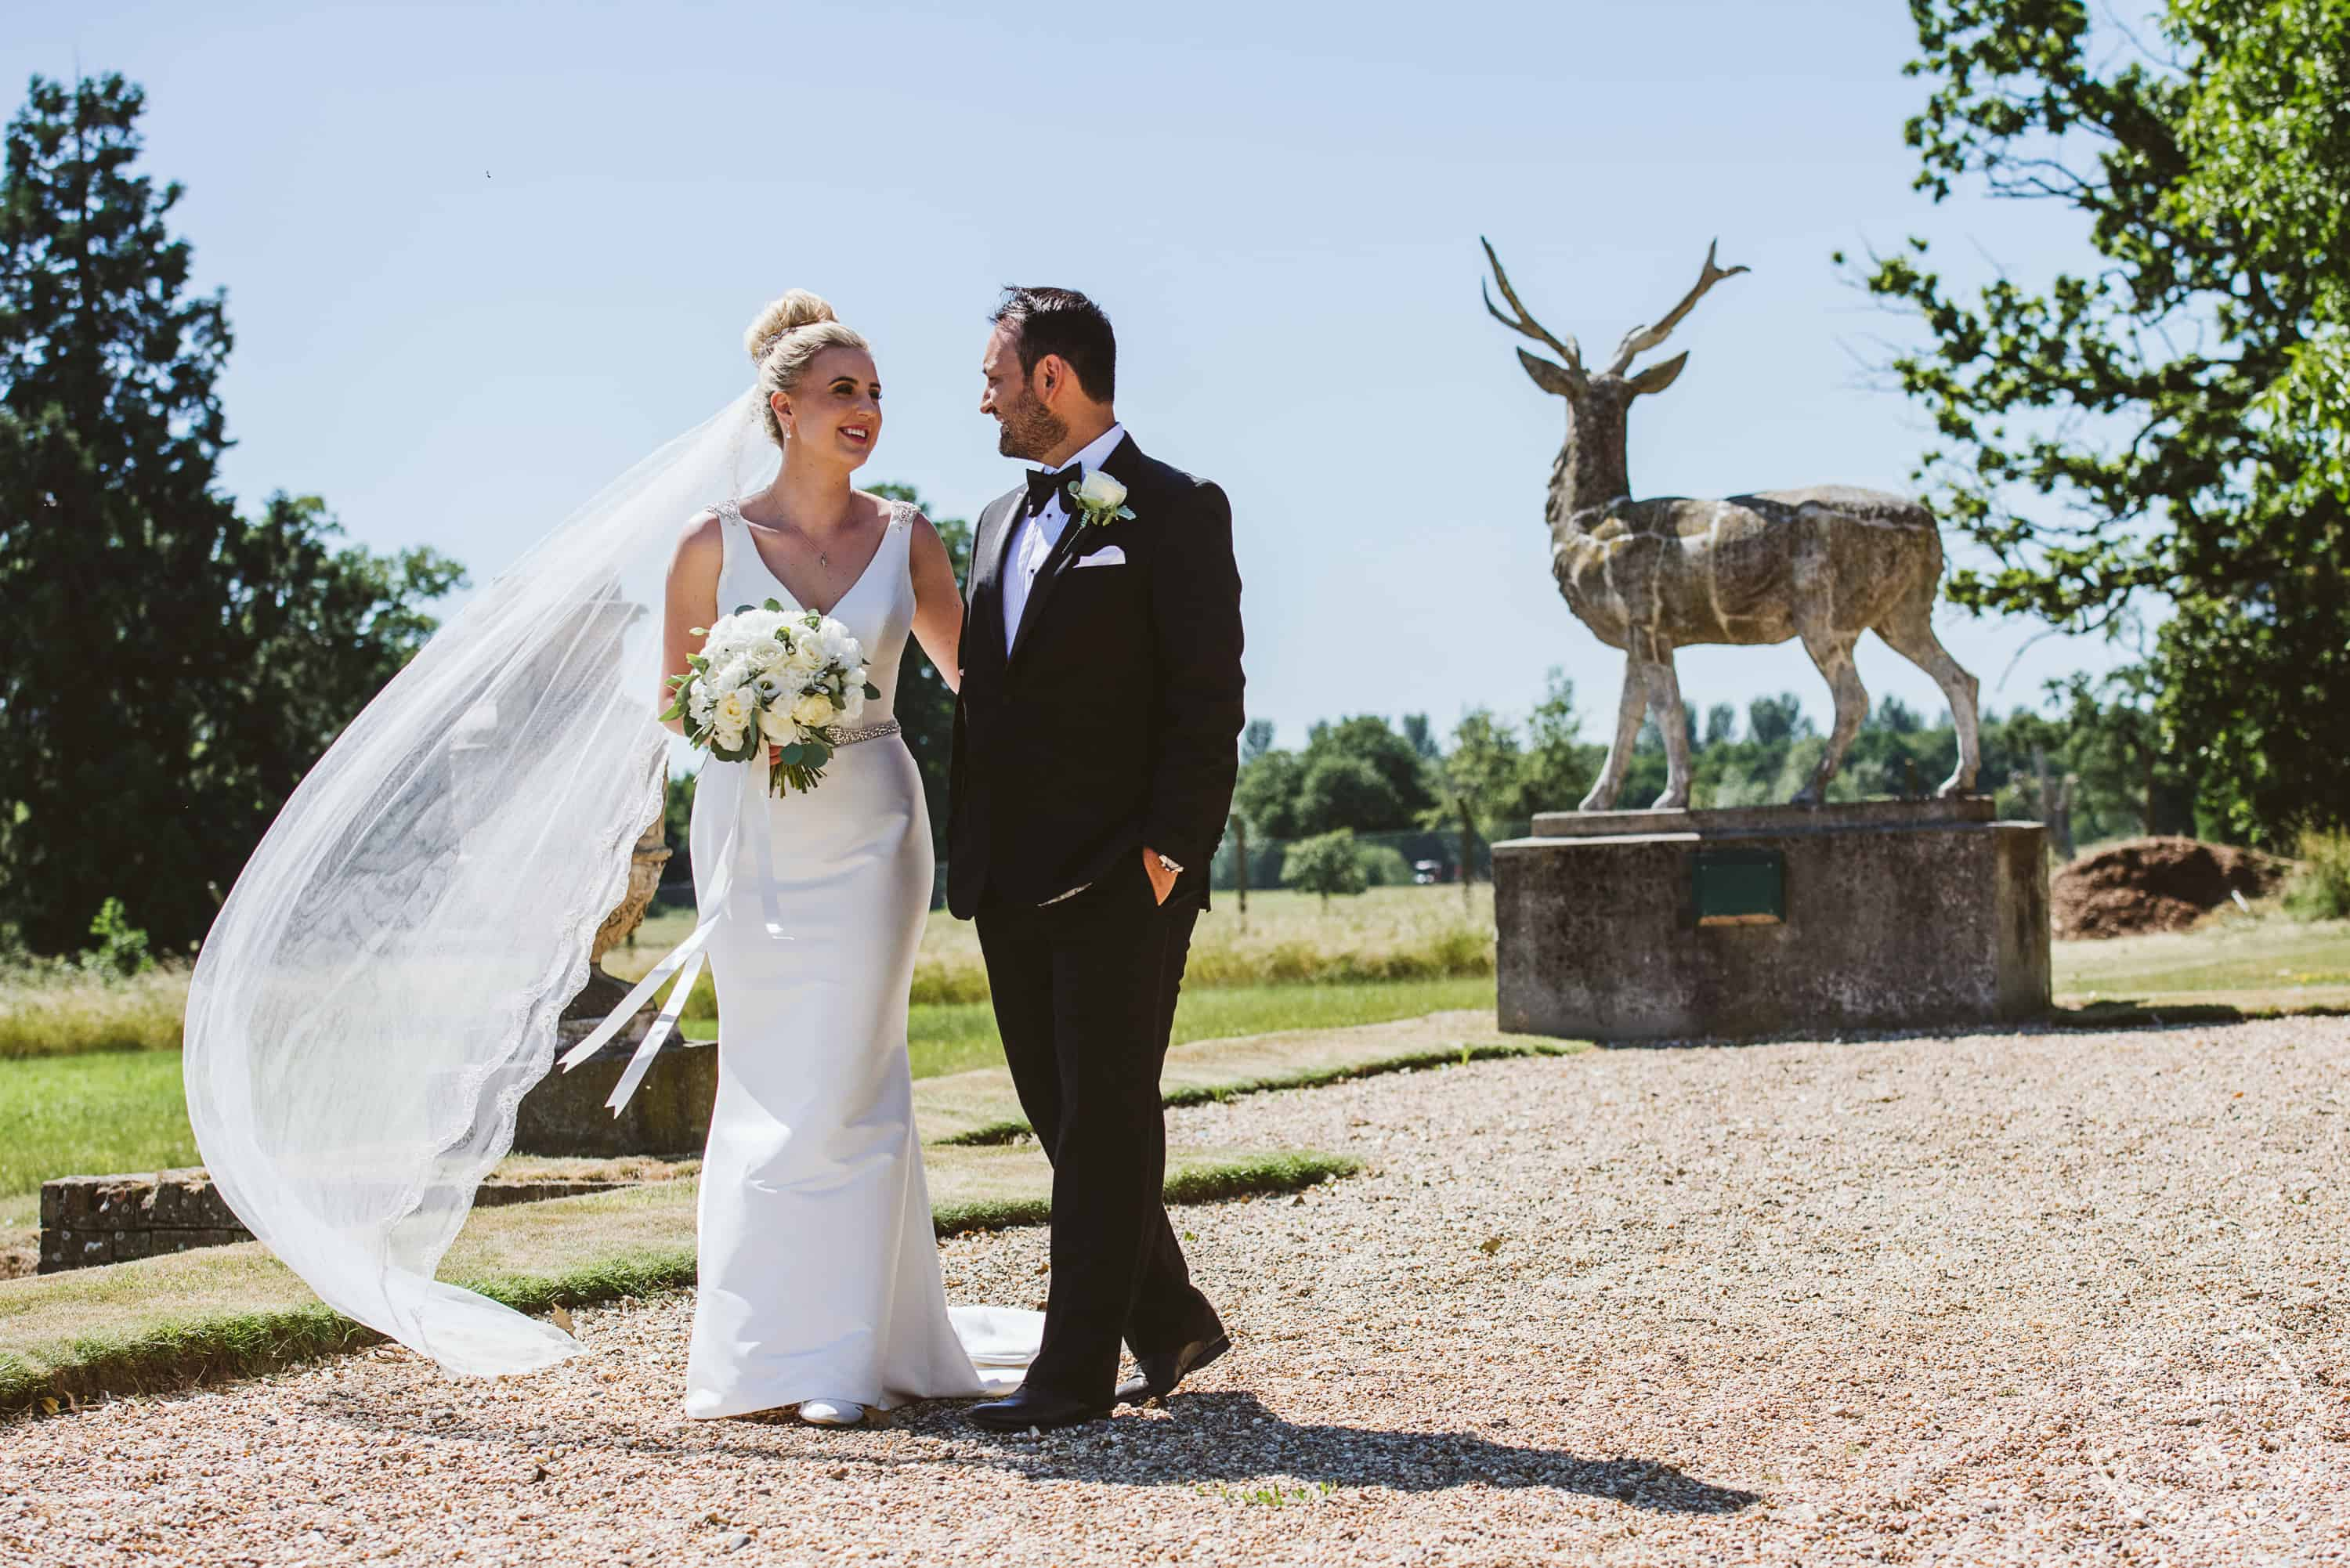 Bride and Groom walking the grounds at Gosfield Hall, with stag statue behind. The bride's veil blowing gently in the wind.